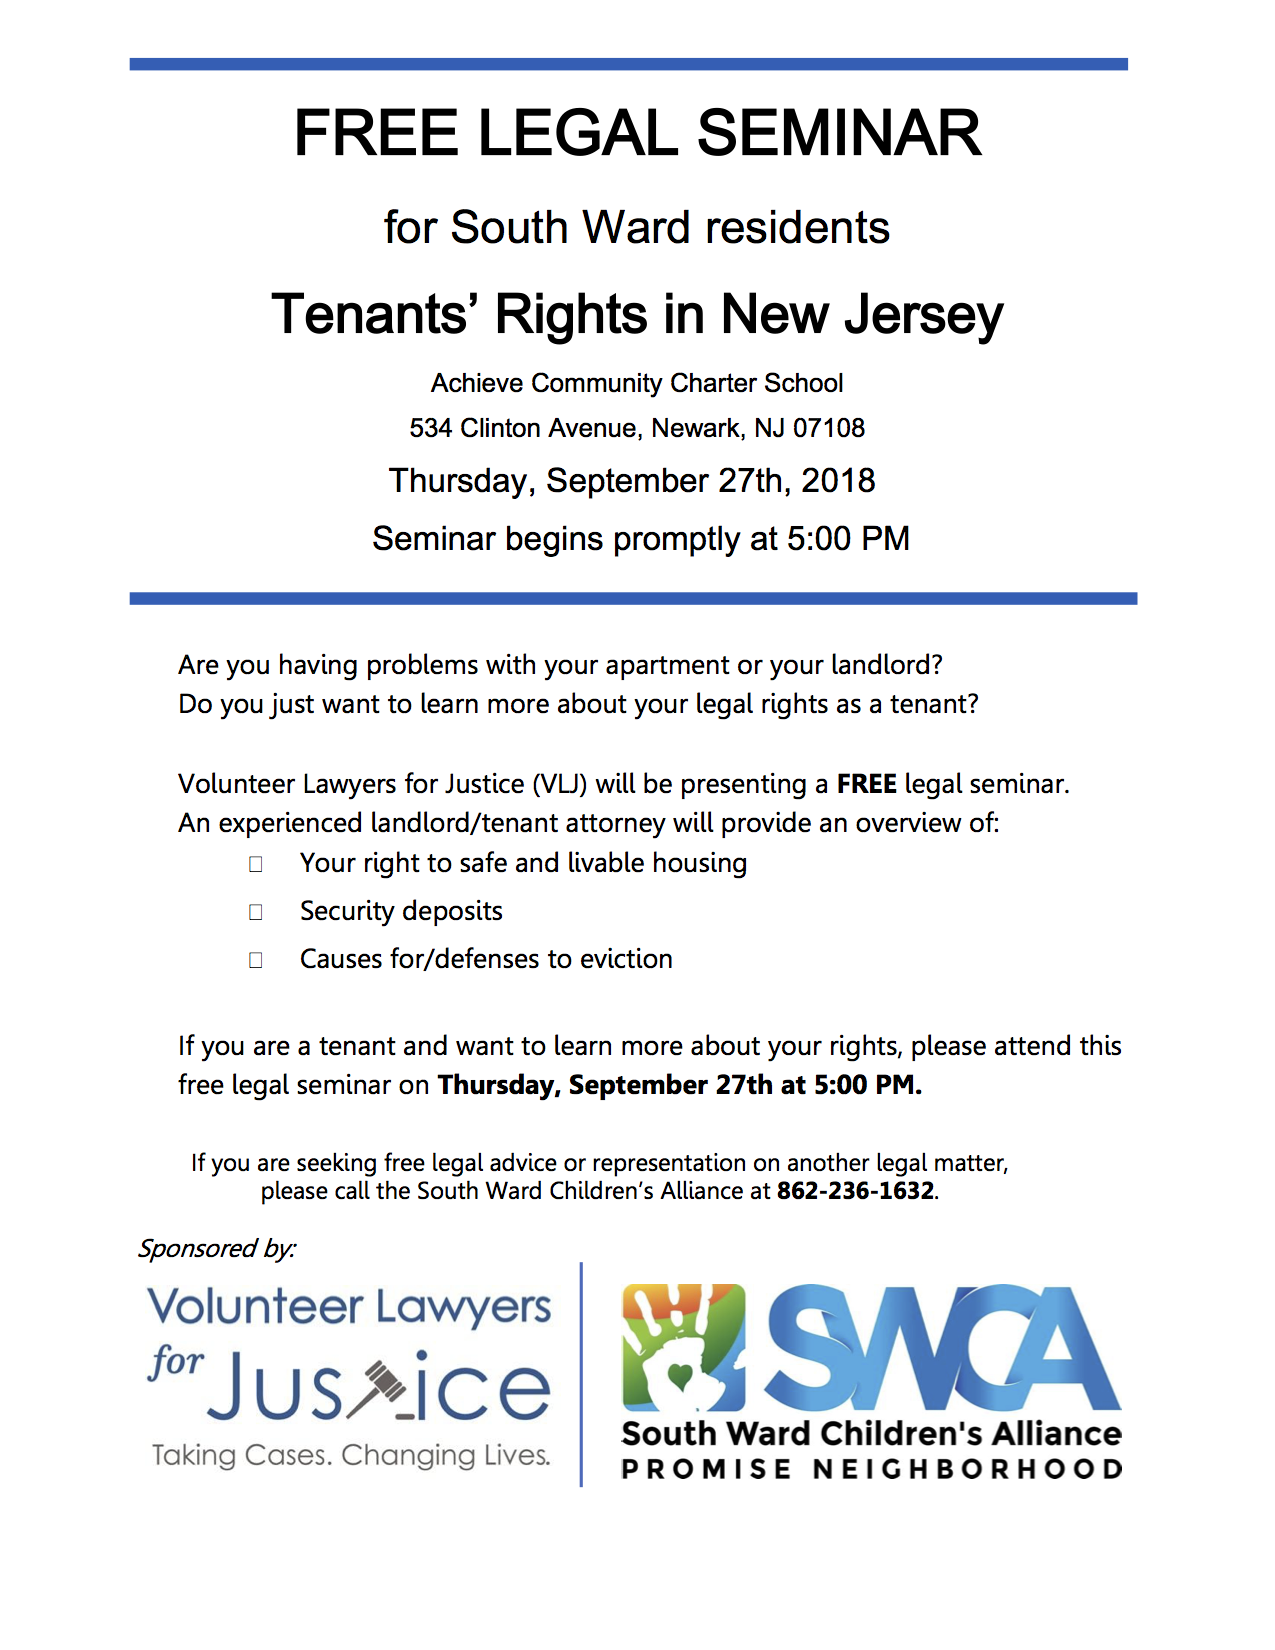 Join VLJ for a Know Your Rights Seminar for Tenants